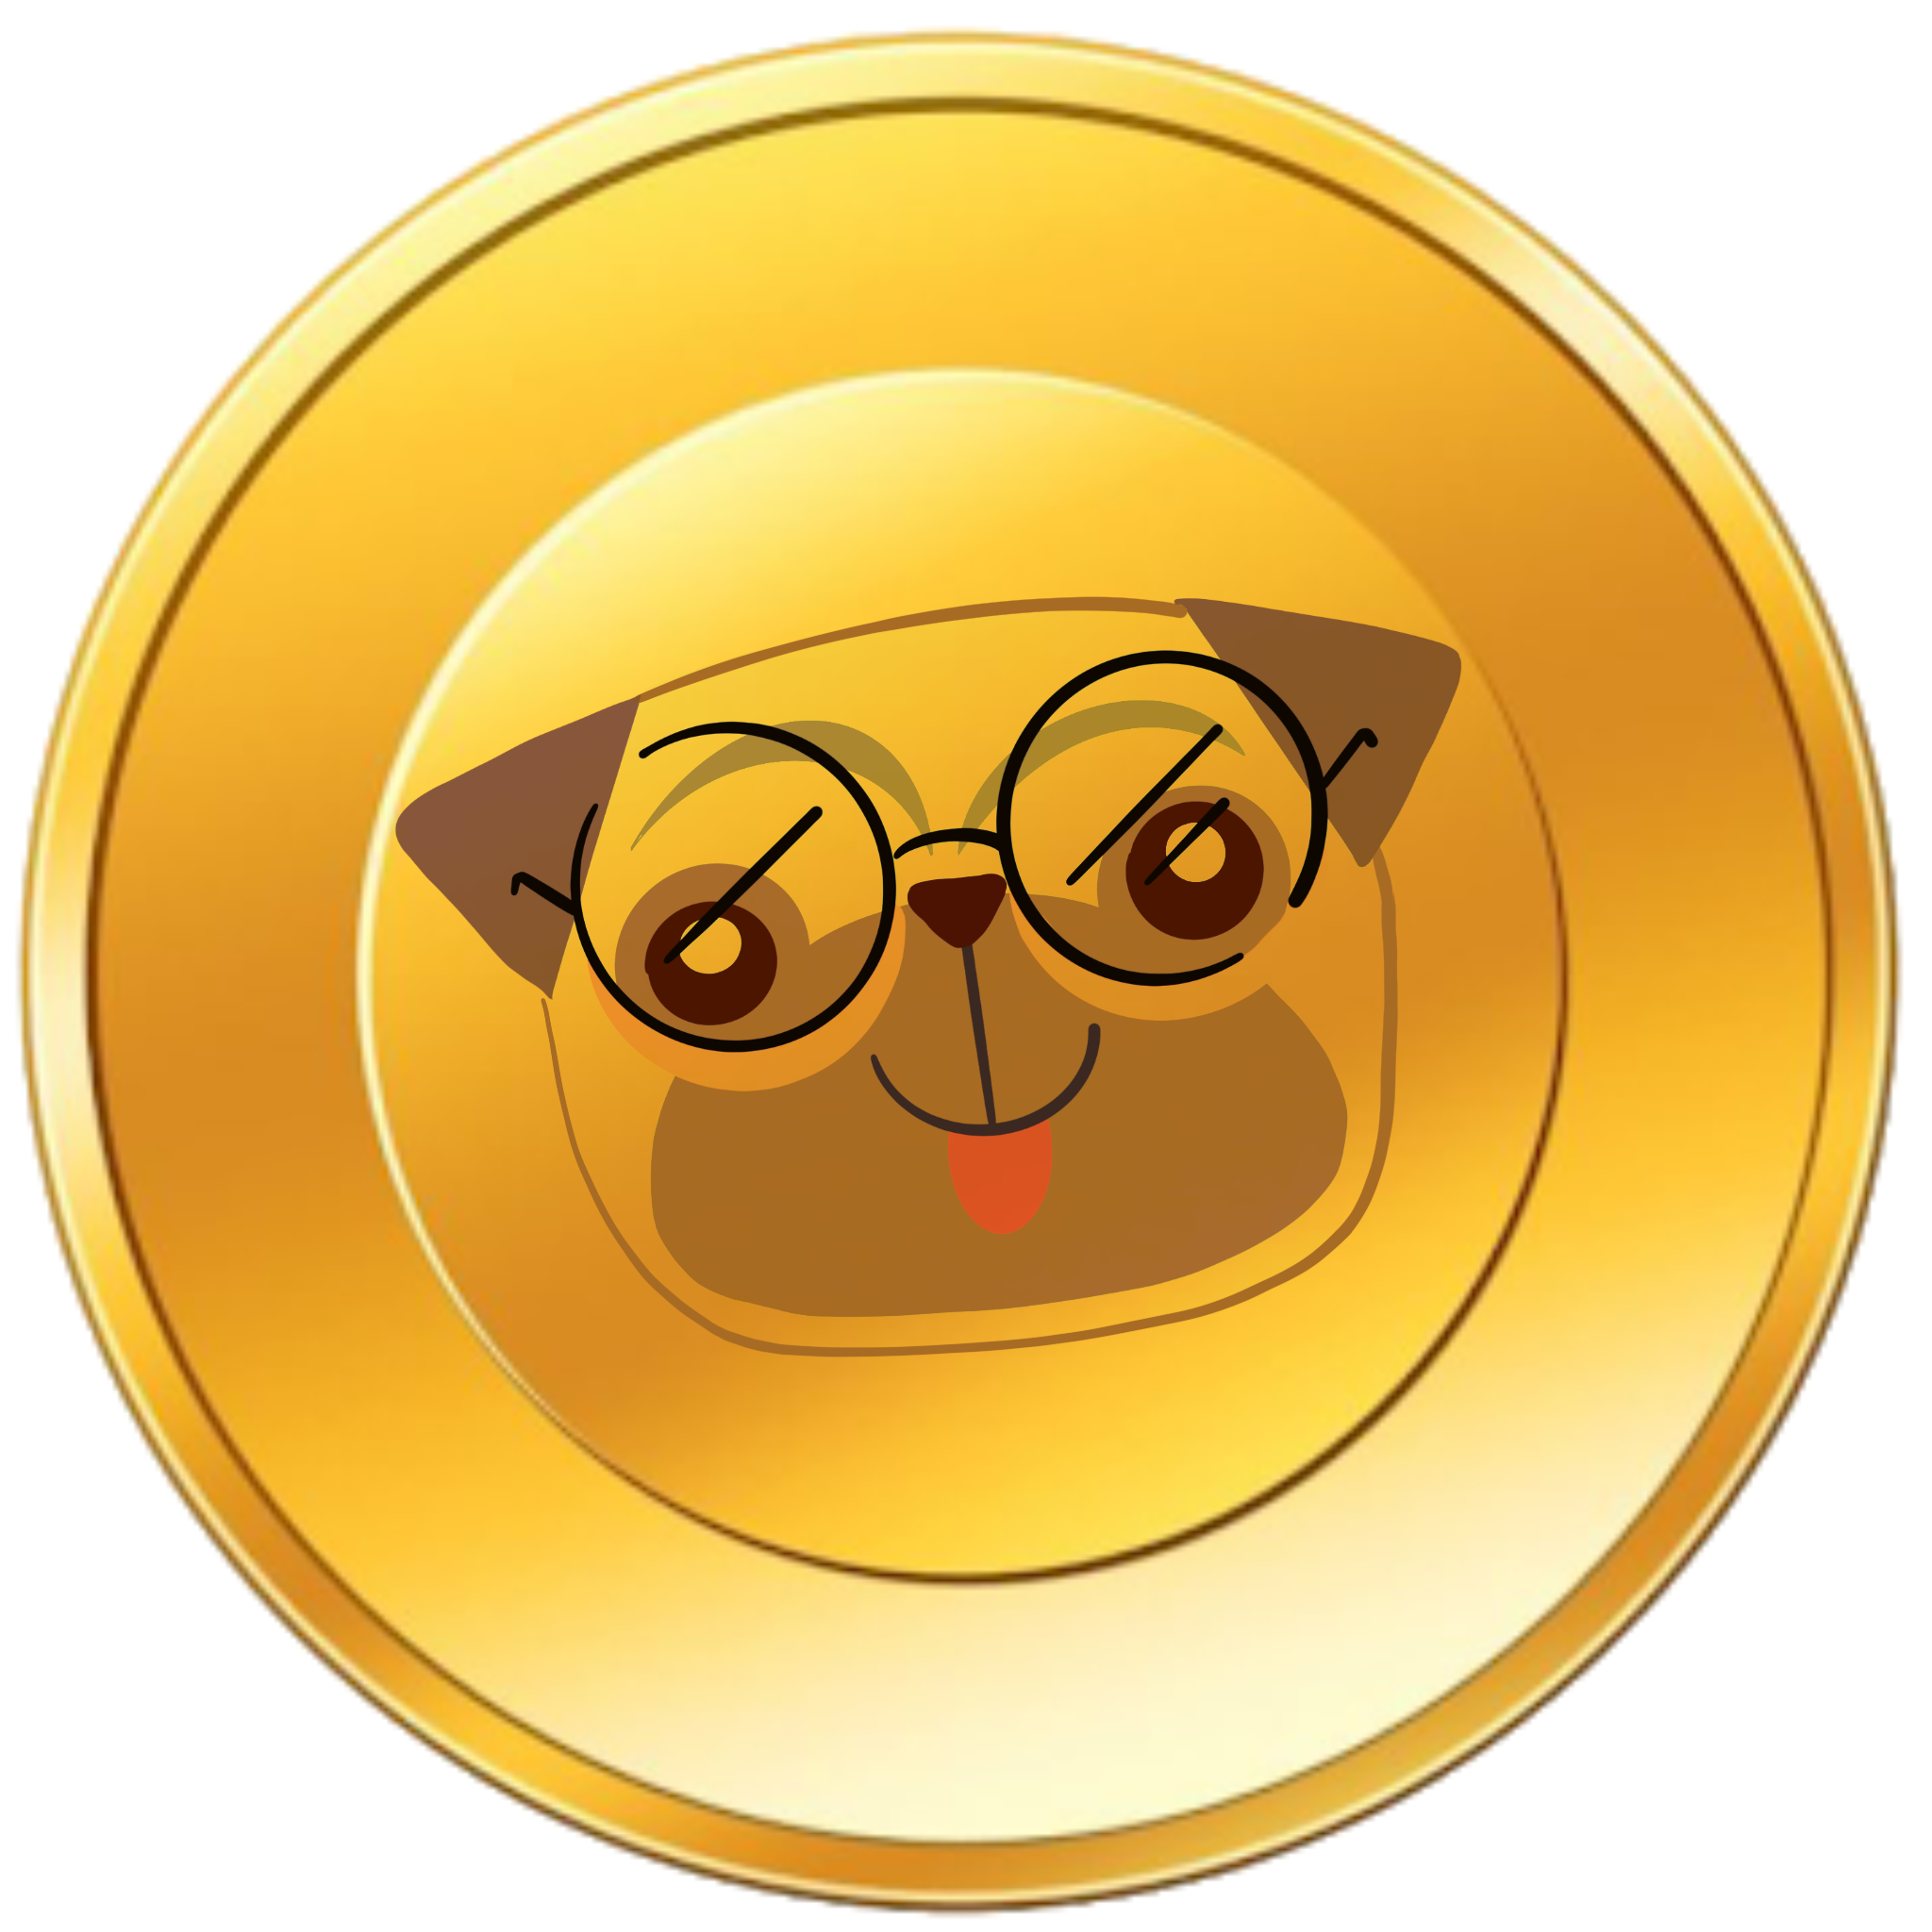 An icon of the cryptocurrency Doggy Inu (DOGI)